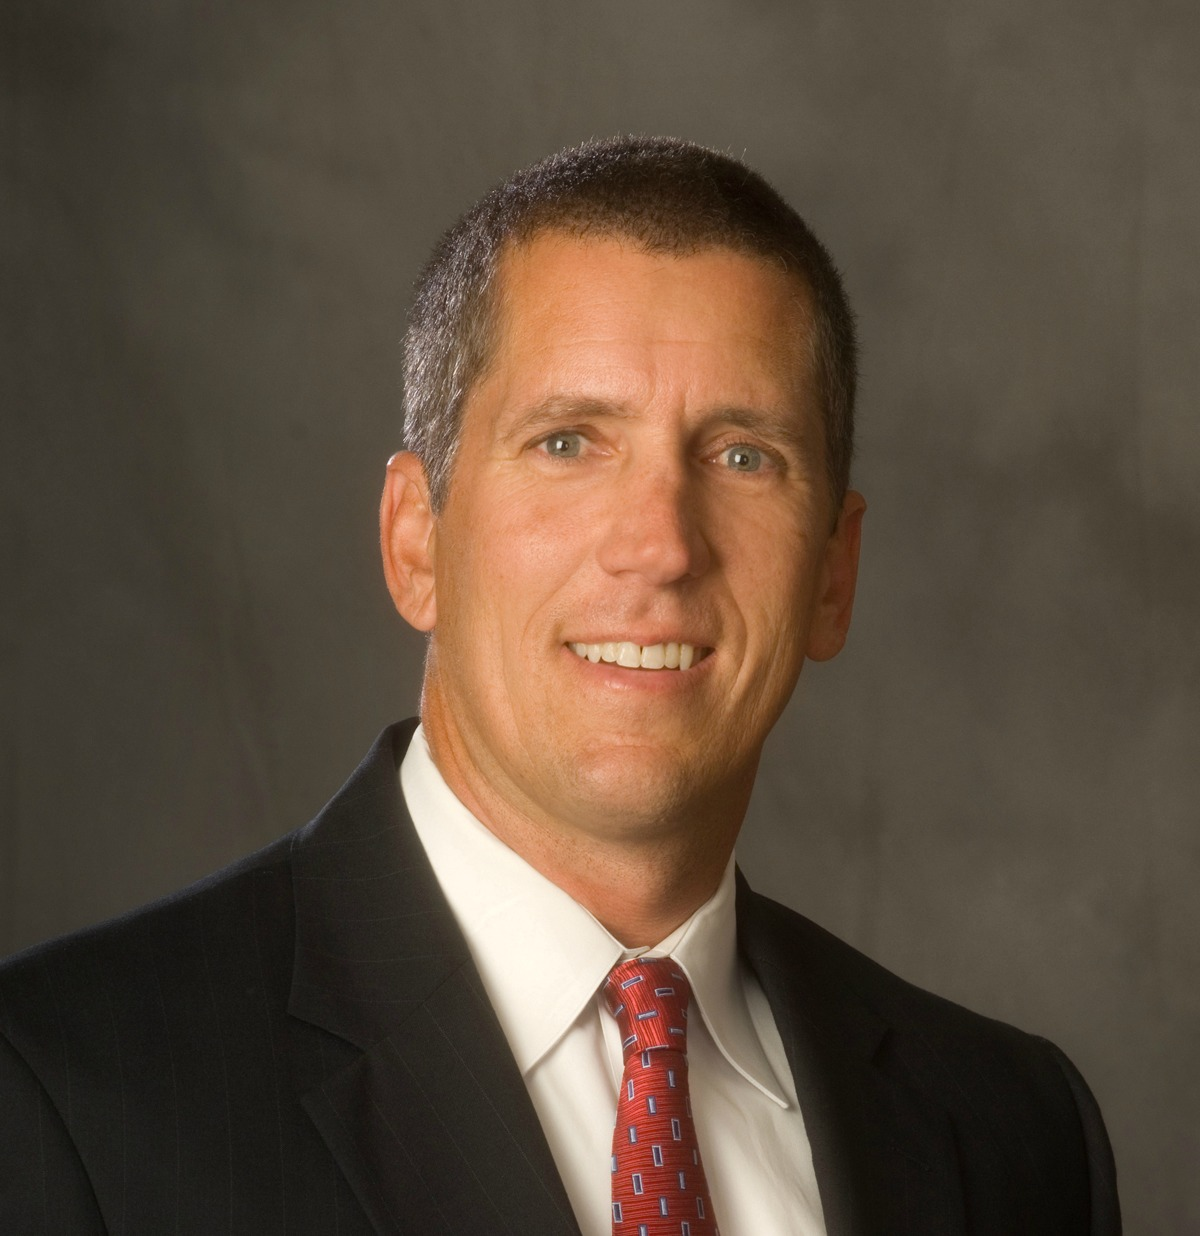 James Hundman, financial advisor Scottsdale AZ